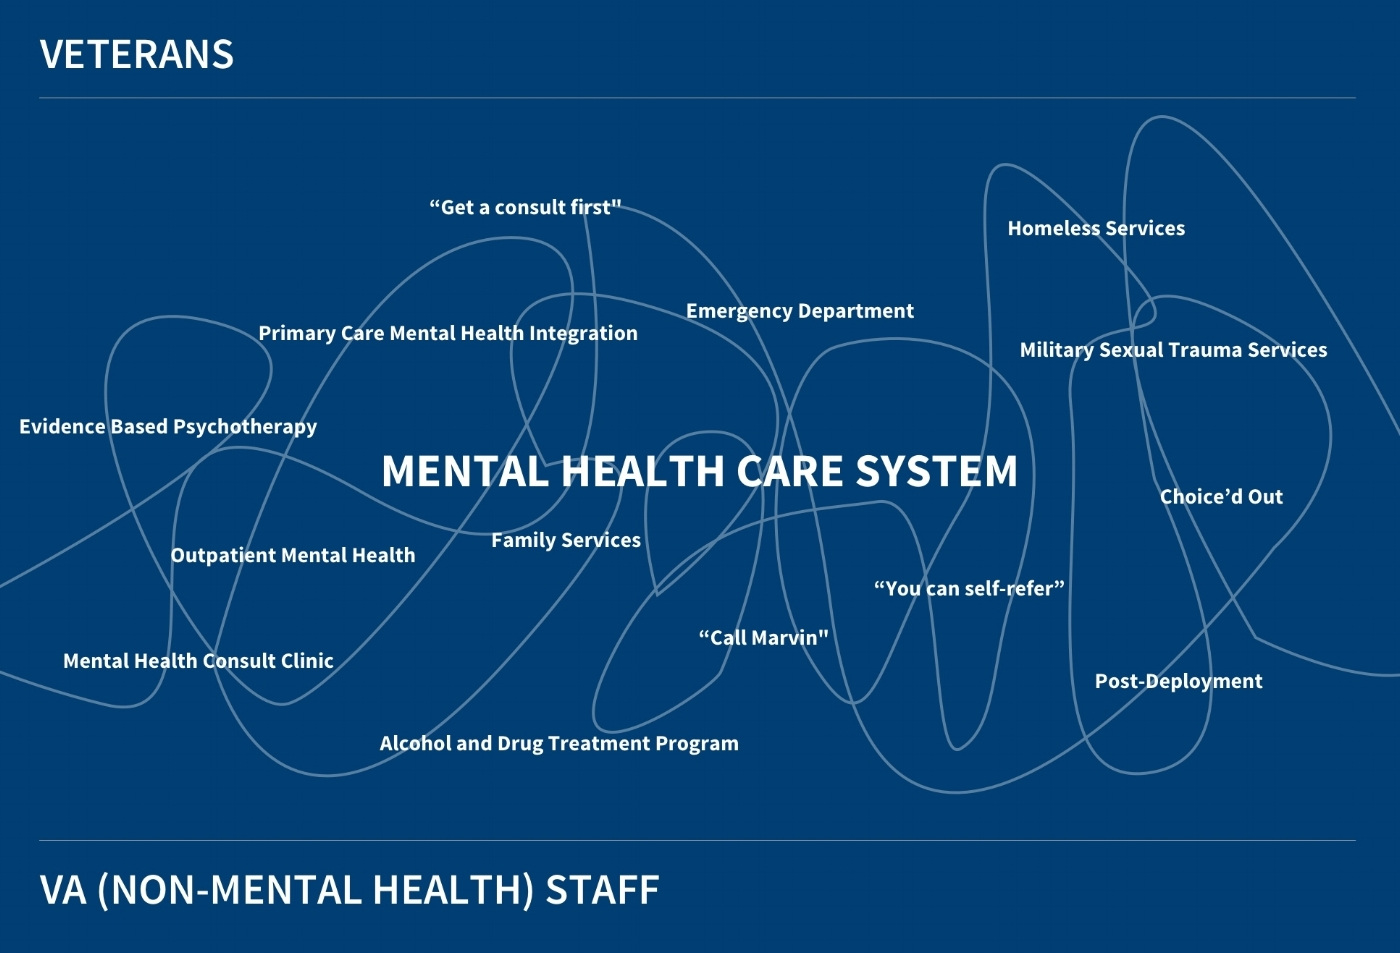 Confusion  | Attempting to communicate the complexity of navigating our mental health care system.